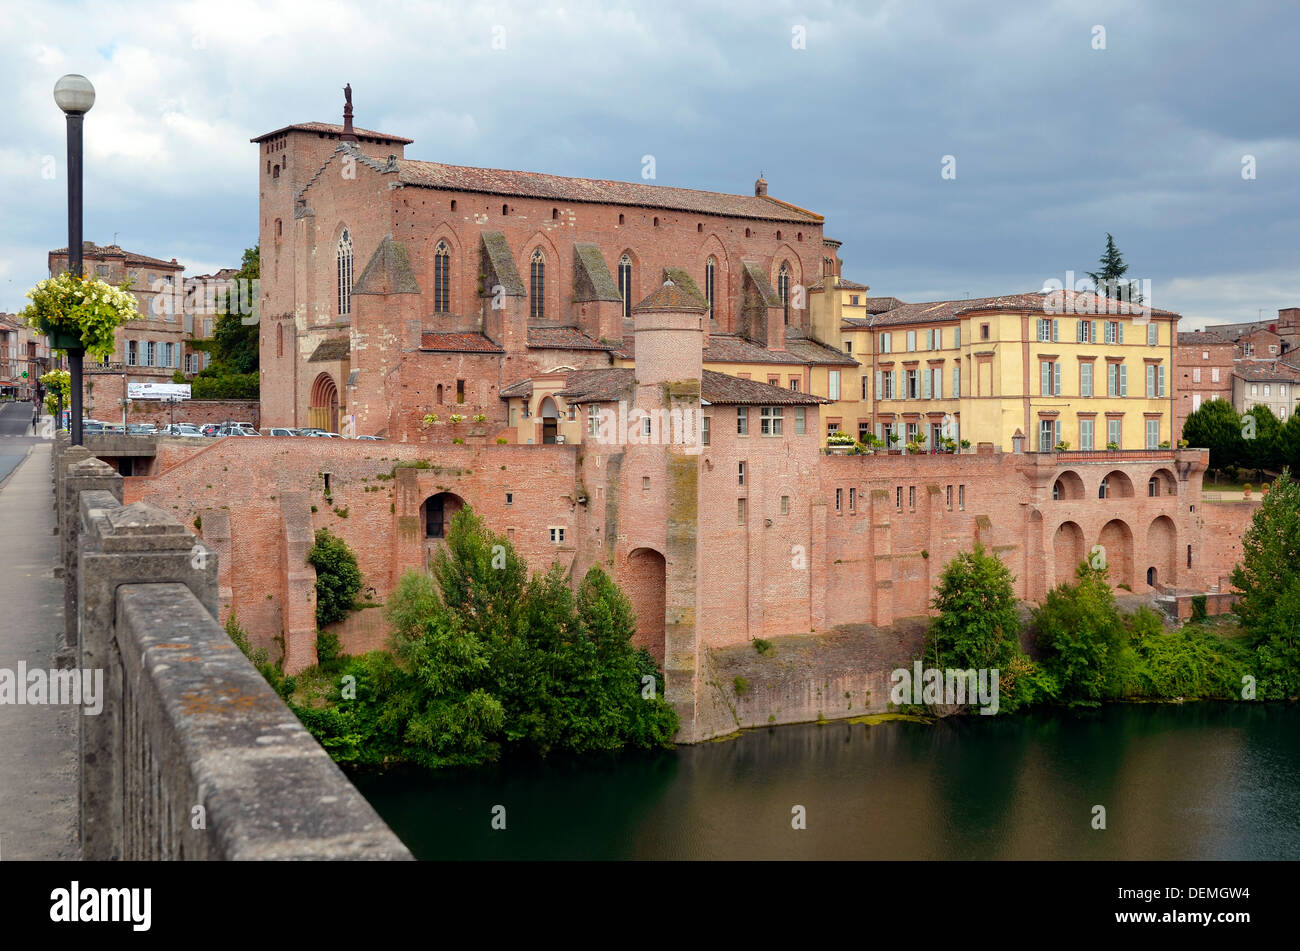 Abbey Saint Michel and fortifications along the Tarn river of the town of Gaillac in southern France, Midi-Pyrénées region - Stock Image